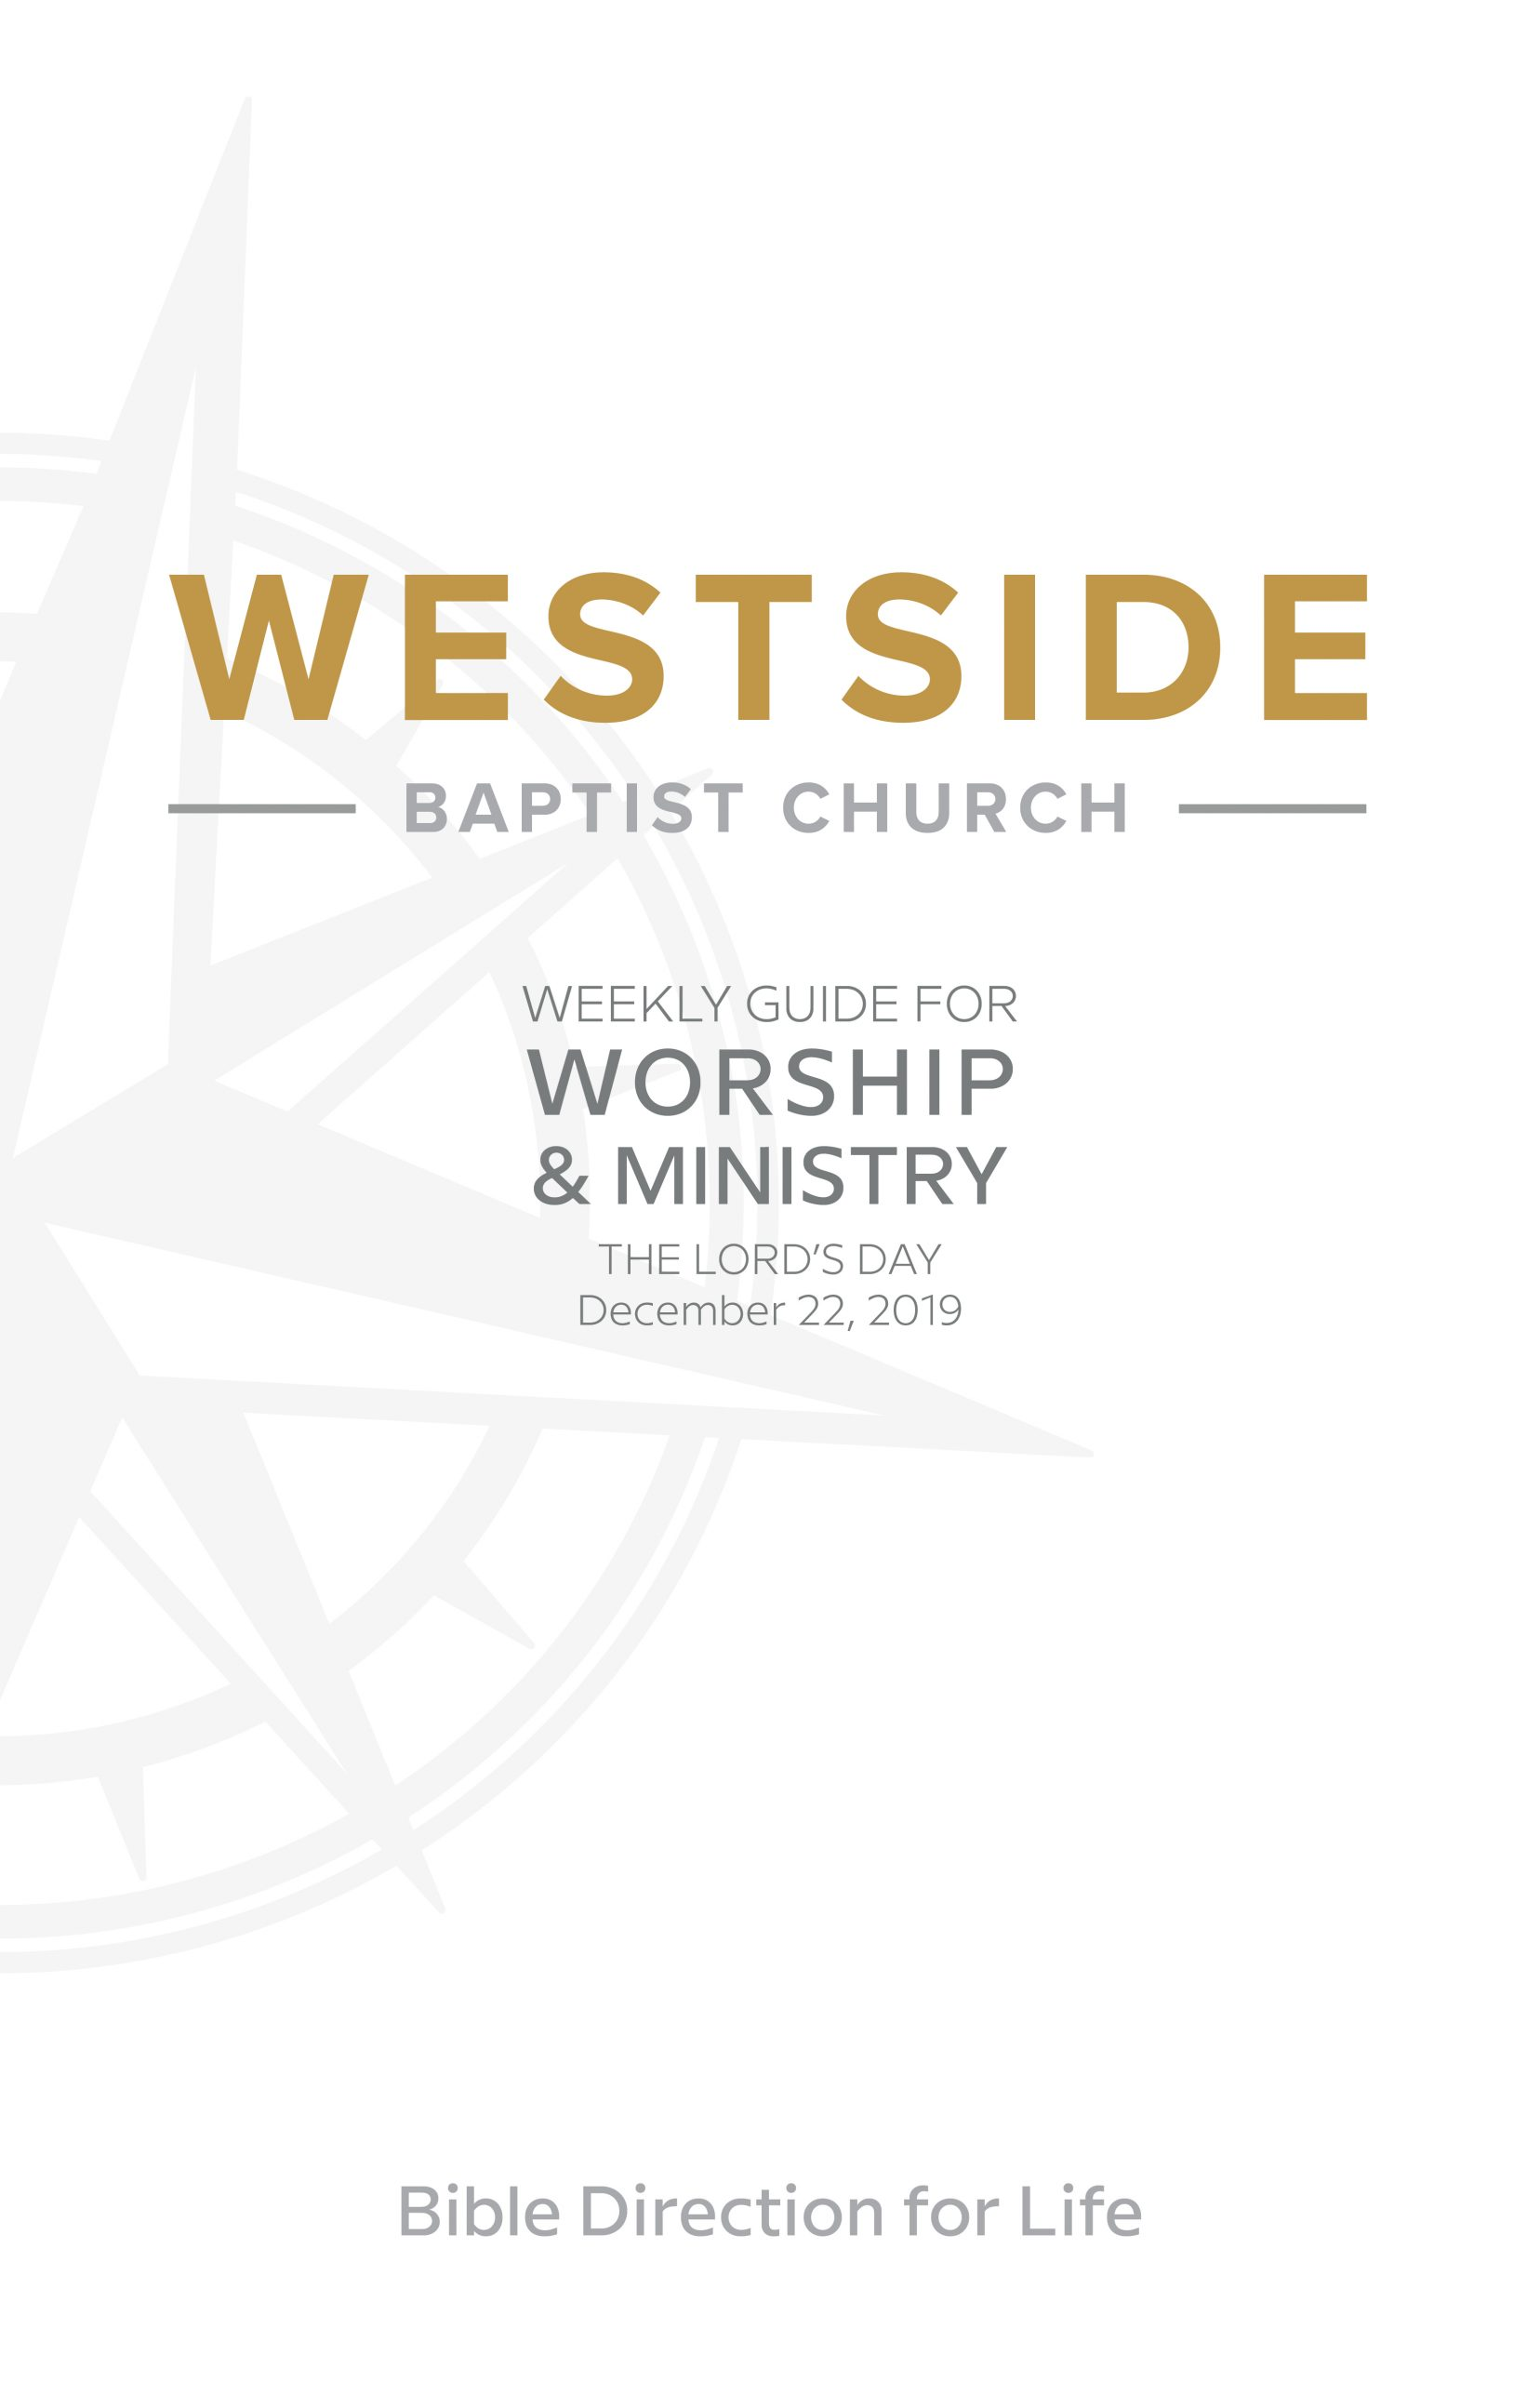 Weekly Guide for Worship and Ministry—December 22